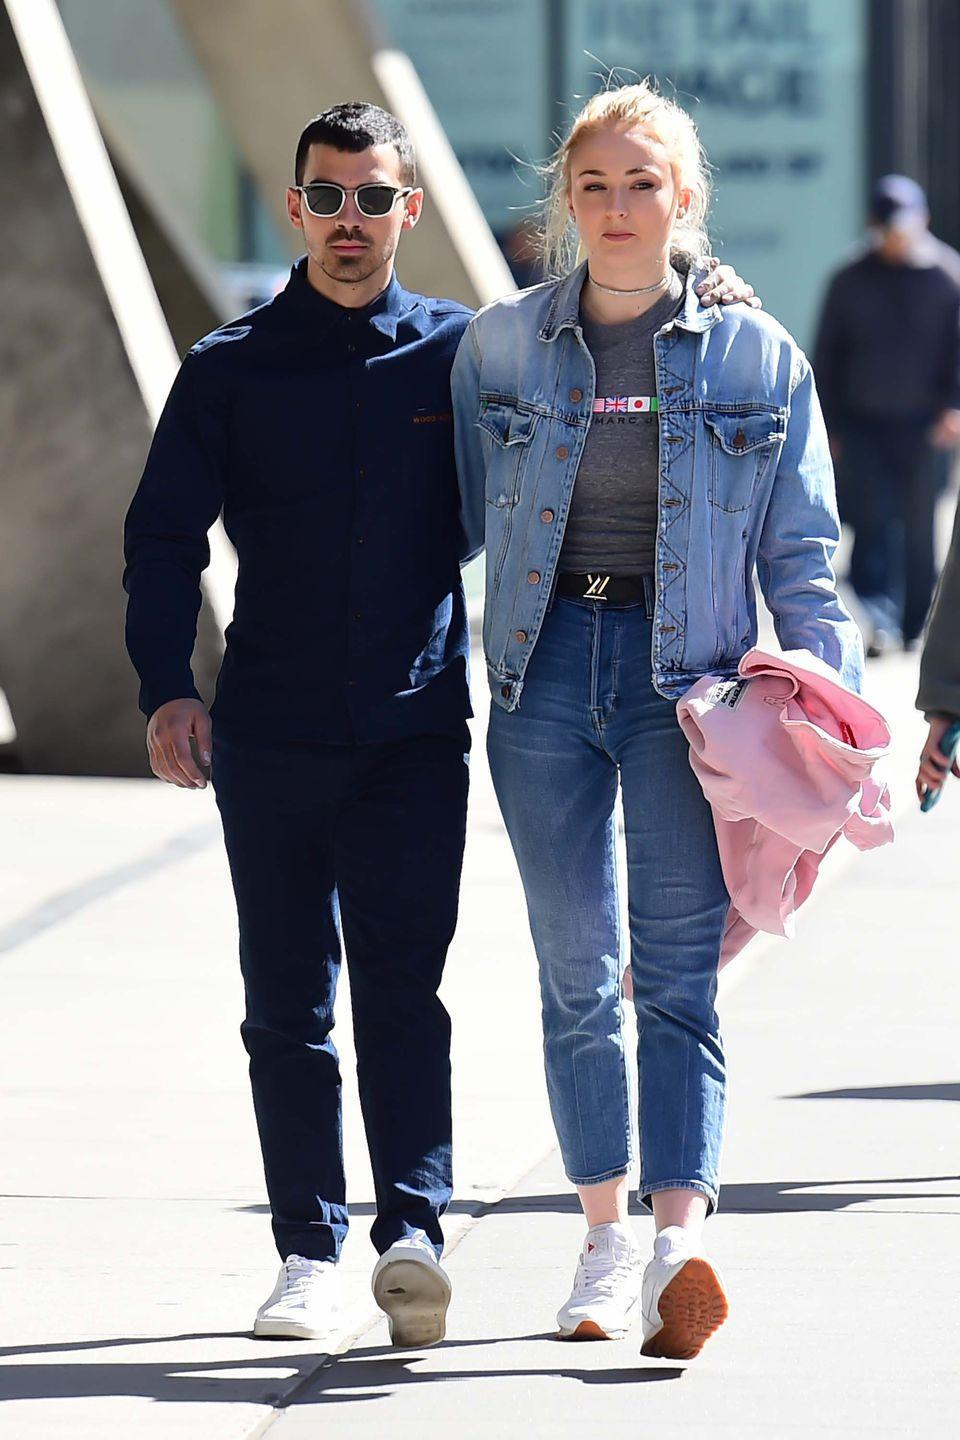 <p>Sophie was first spotted with Joe Jonas in late November 2016. In October 2017, Turner announced her engagement to Joe on Instagram. </p>